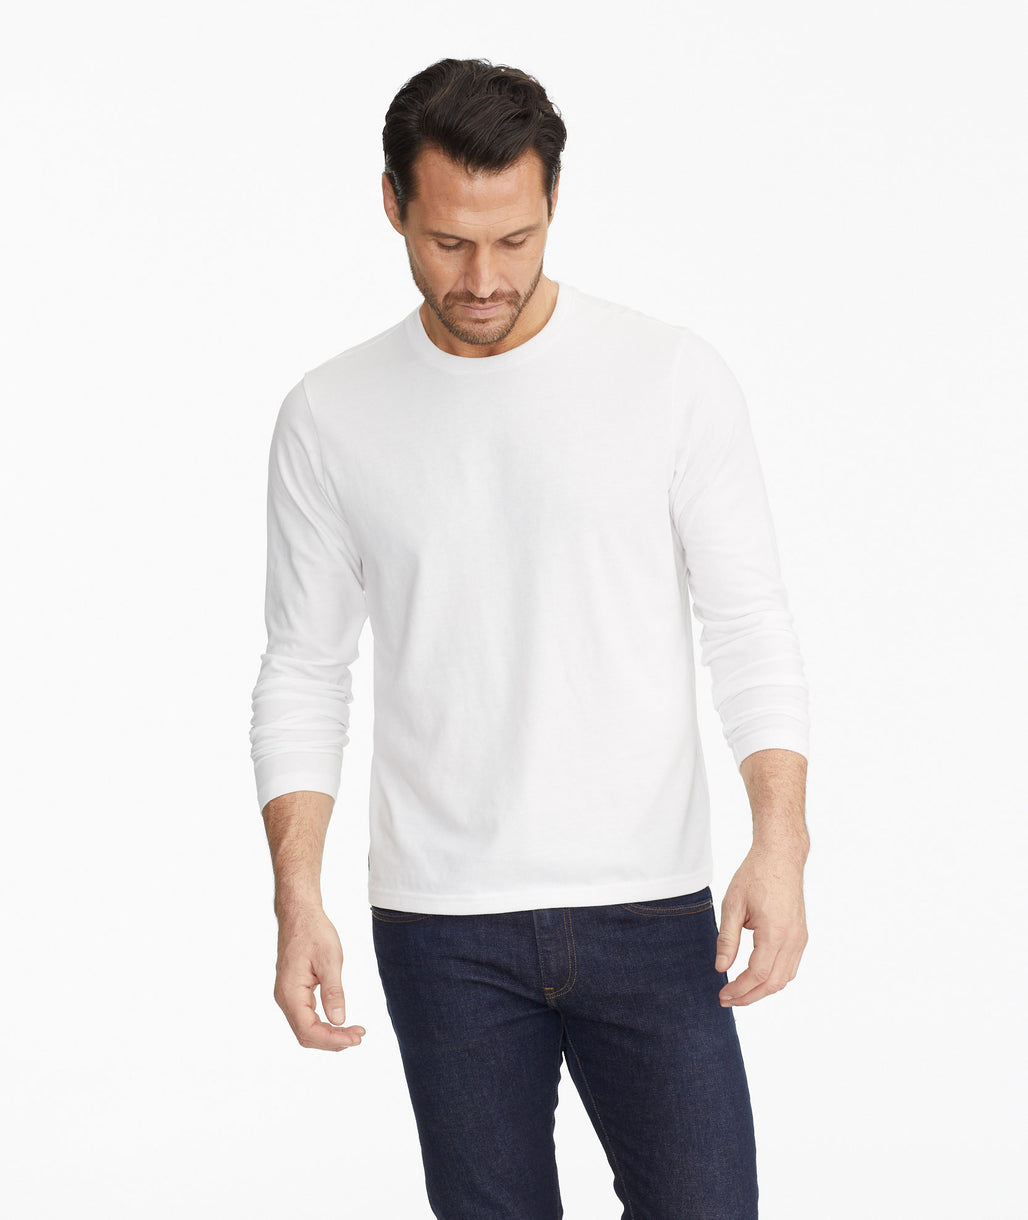 Model wearing a White Ultrasoft Long-Sleeve Tee